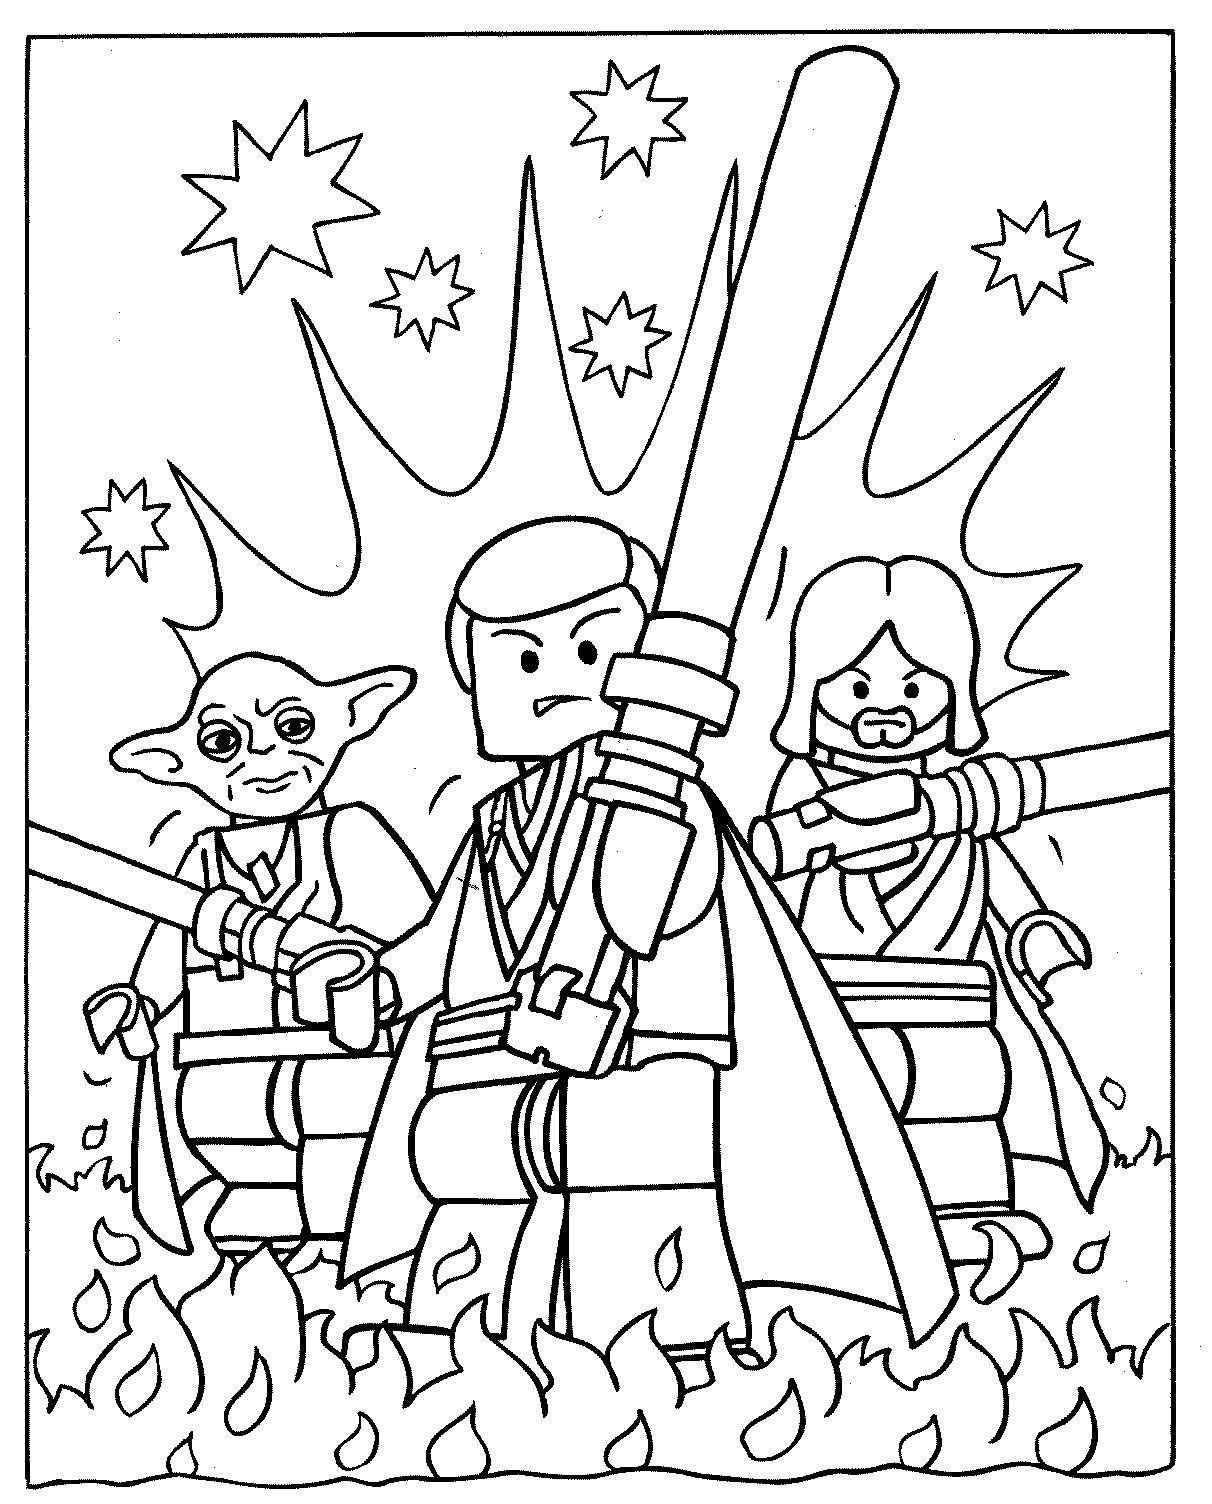 Theretroinc On Etsy Kids Color Pages Pinterest Lego Coloring